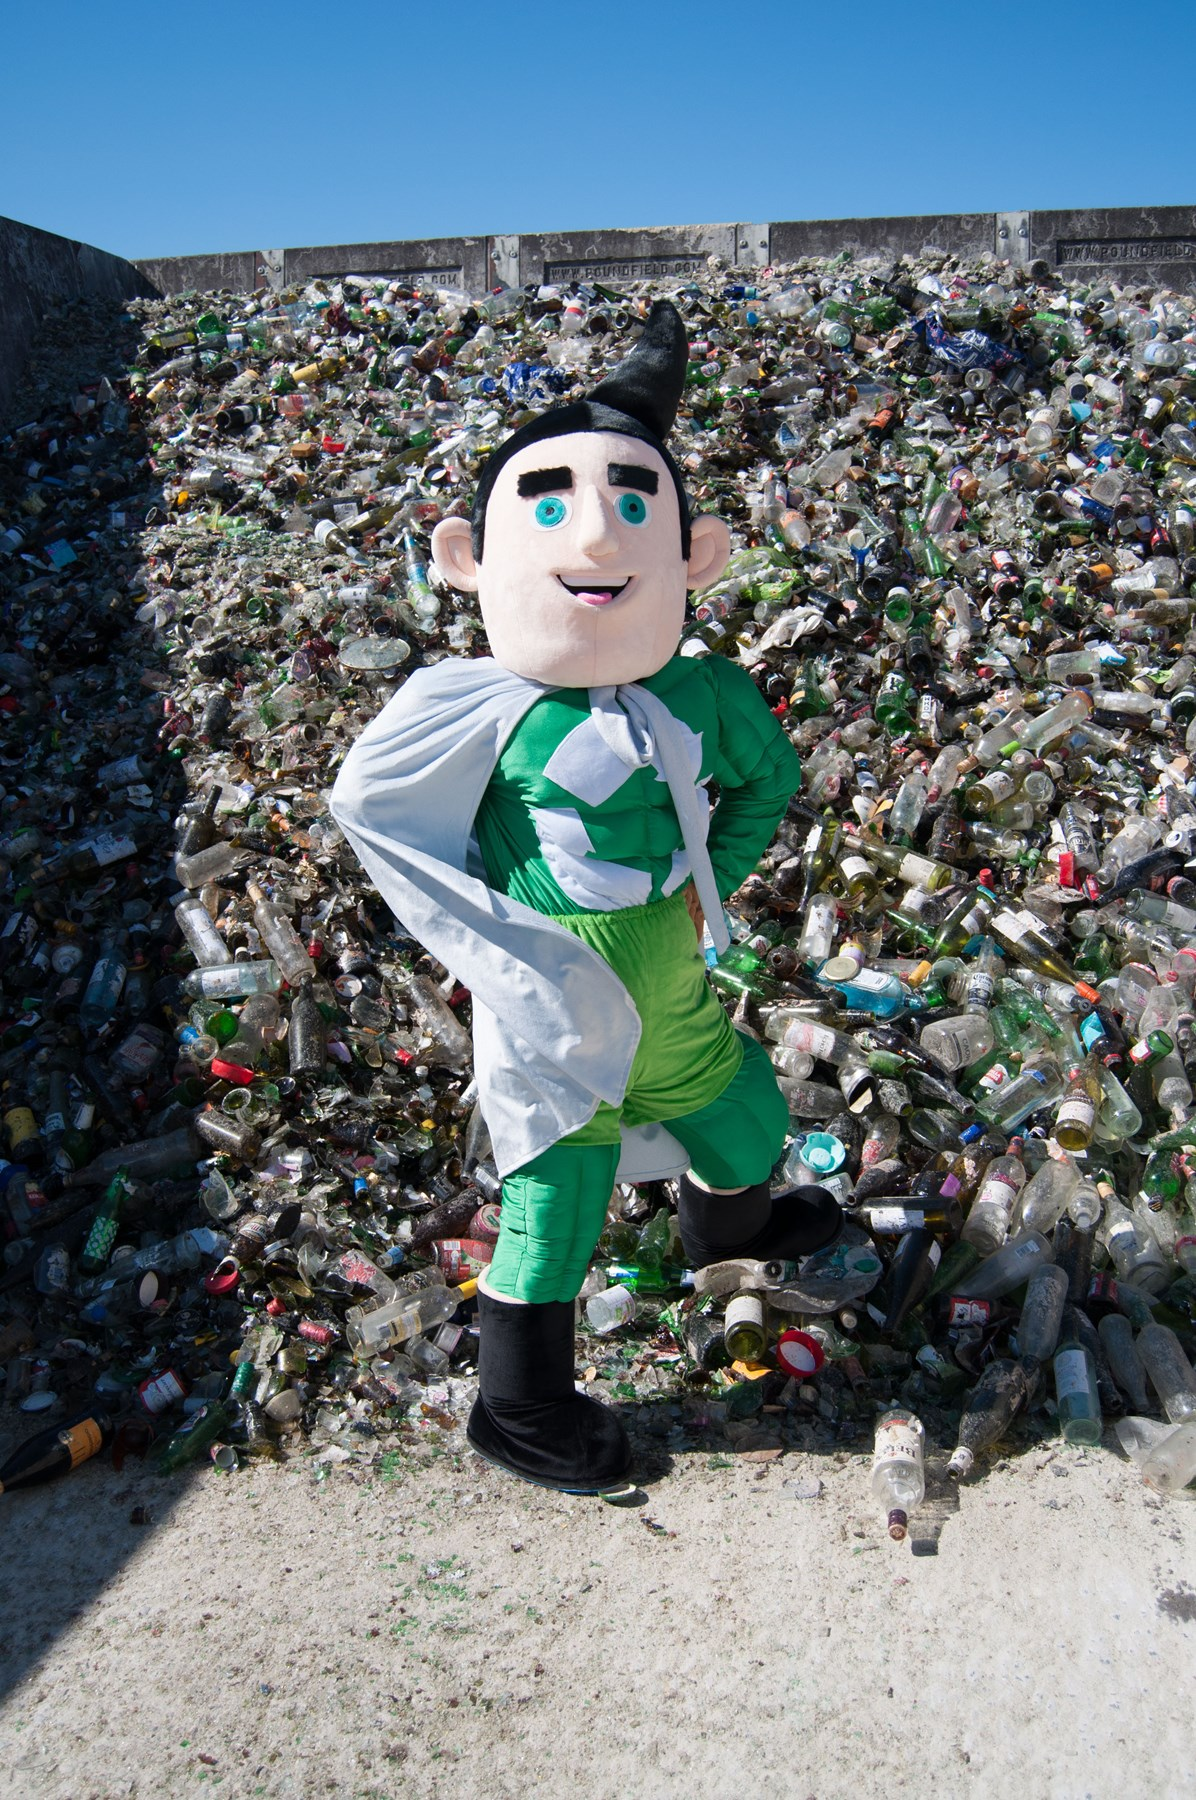 Moray recycling rate among best in Scotland: Moray recycling rate among best in Scotland